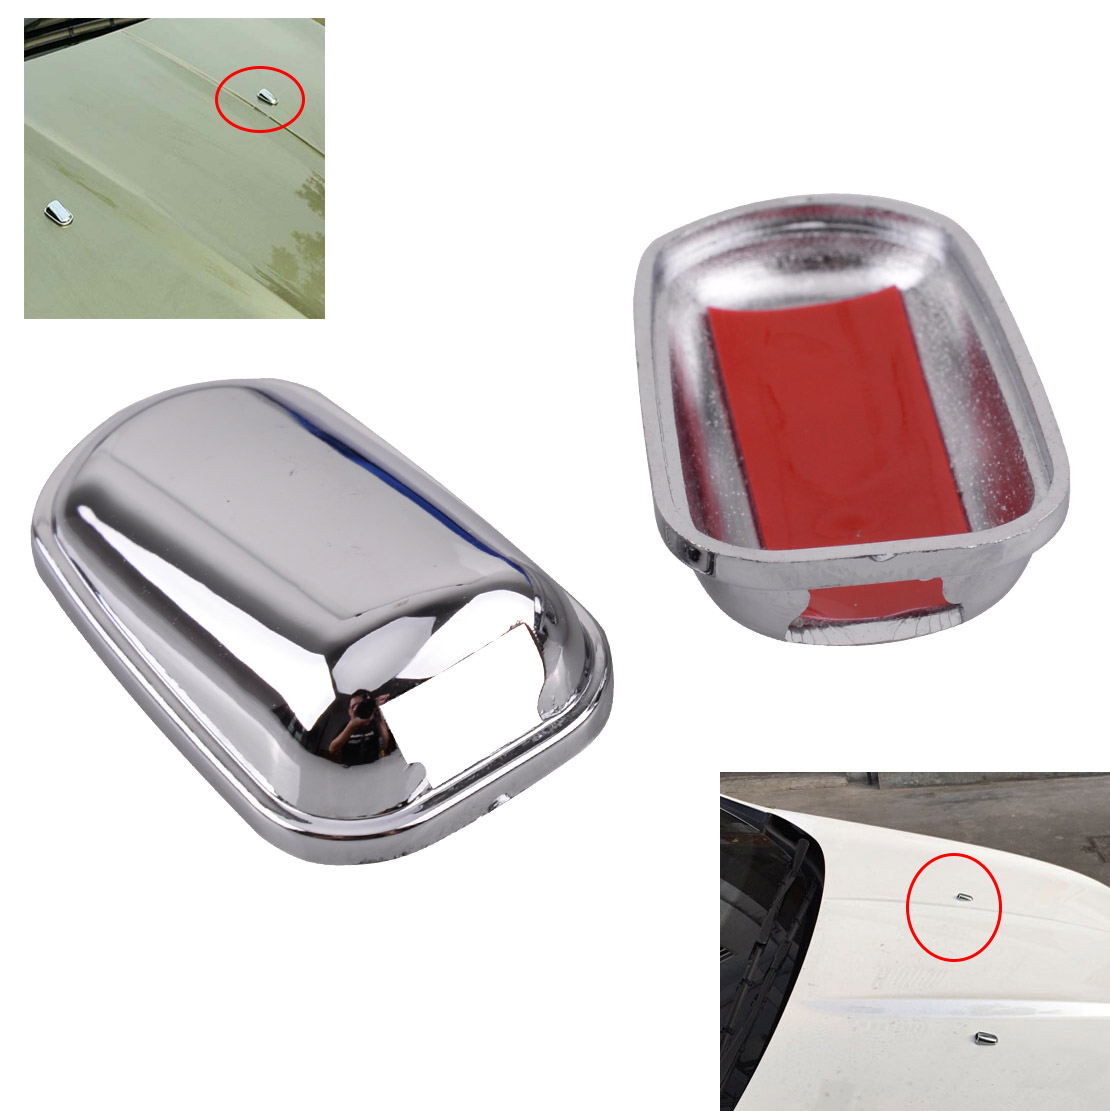 beler 2pcs Windscreen Washer Wiper Water Cover Spray Nozzle Chrome Plated Trim Sticker Fit for Ford Kuga Escape image